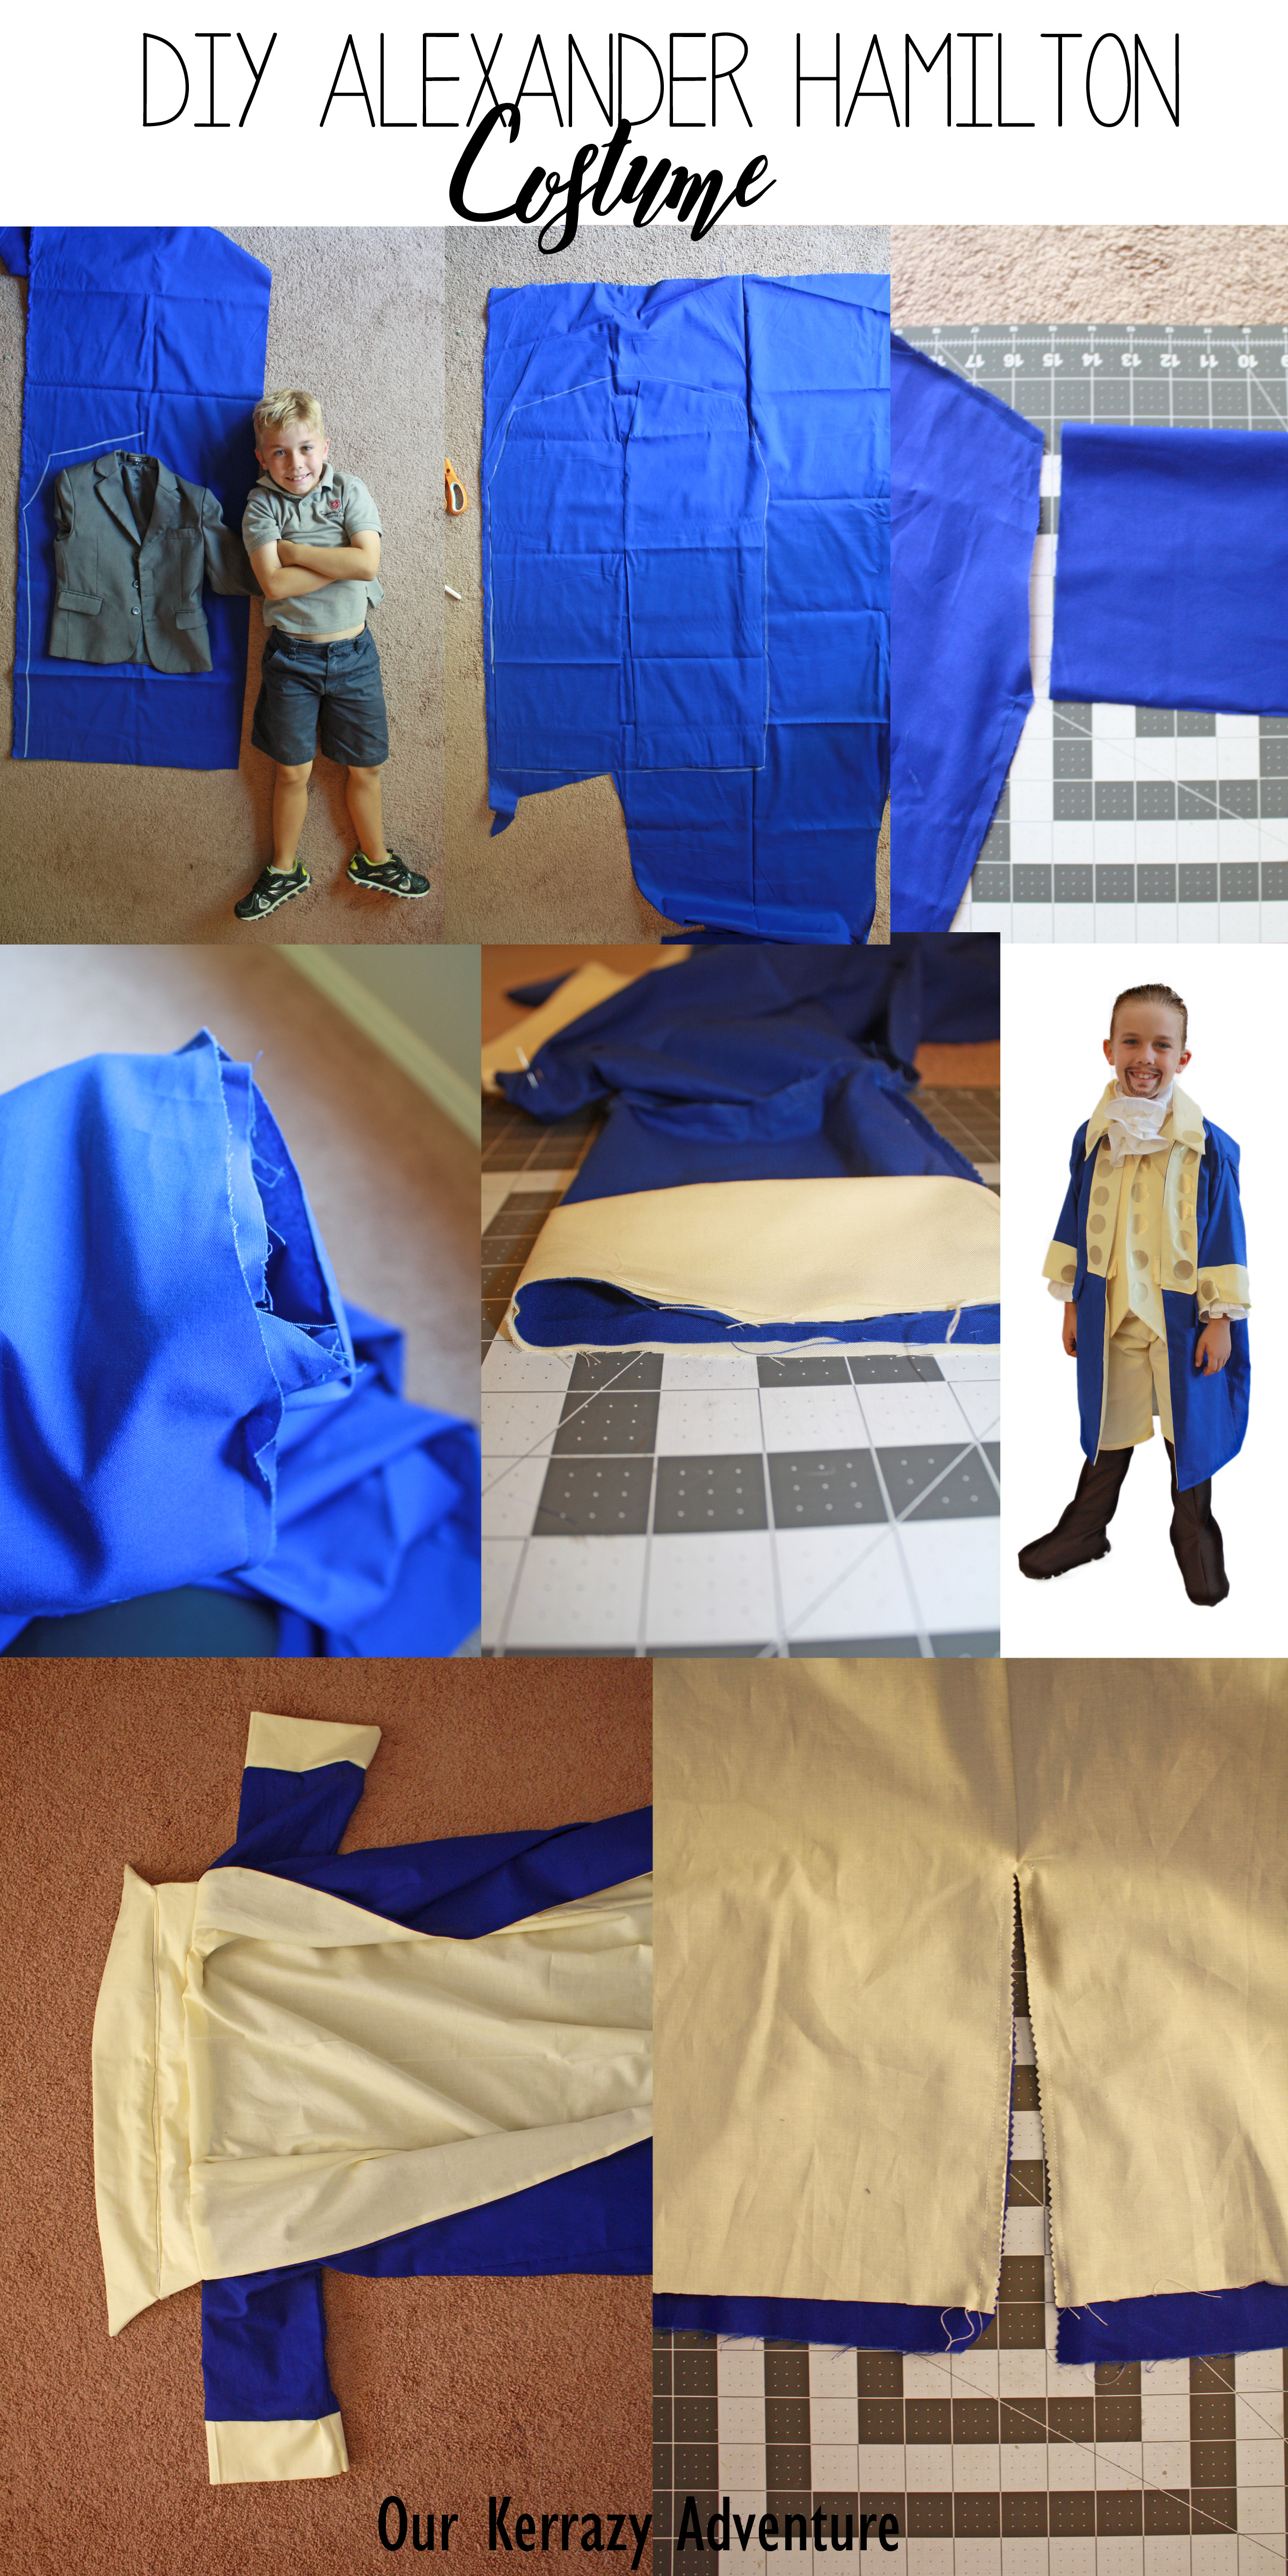 Diy alexander hamilton costume our kerrazy adventure instructions for an alexander hamilton costume childrens costume solutioingenieria Image collections